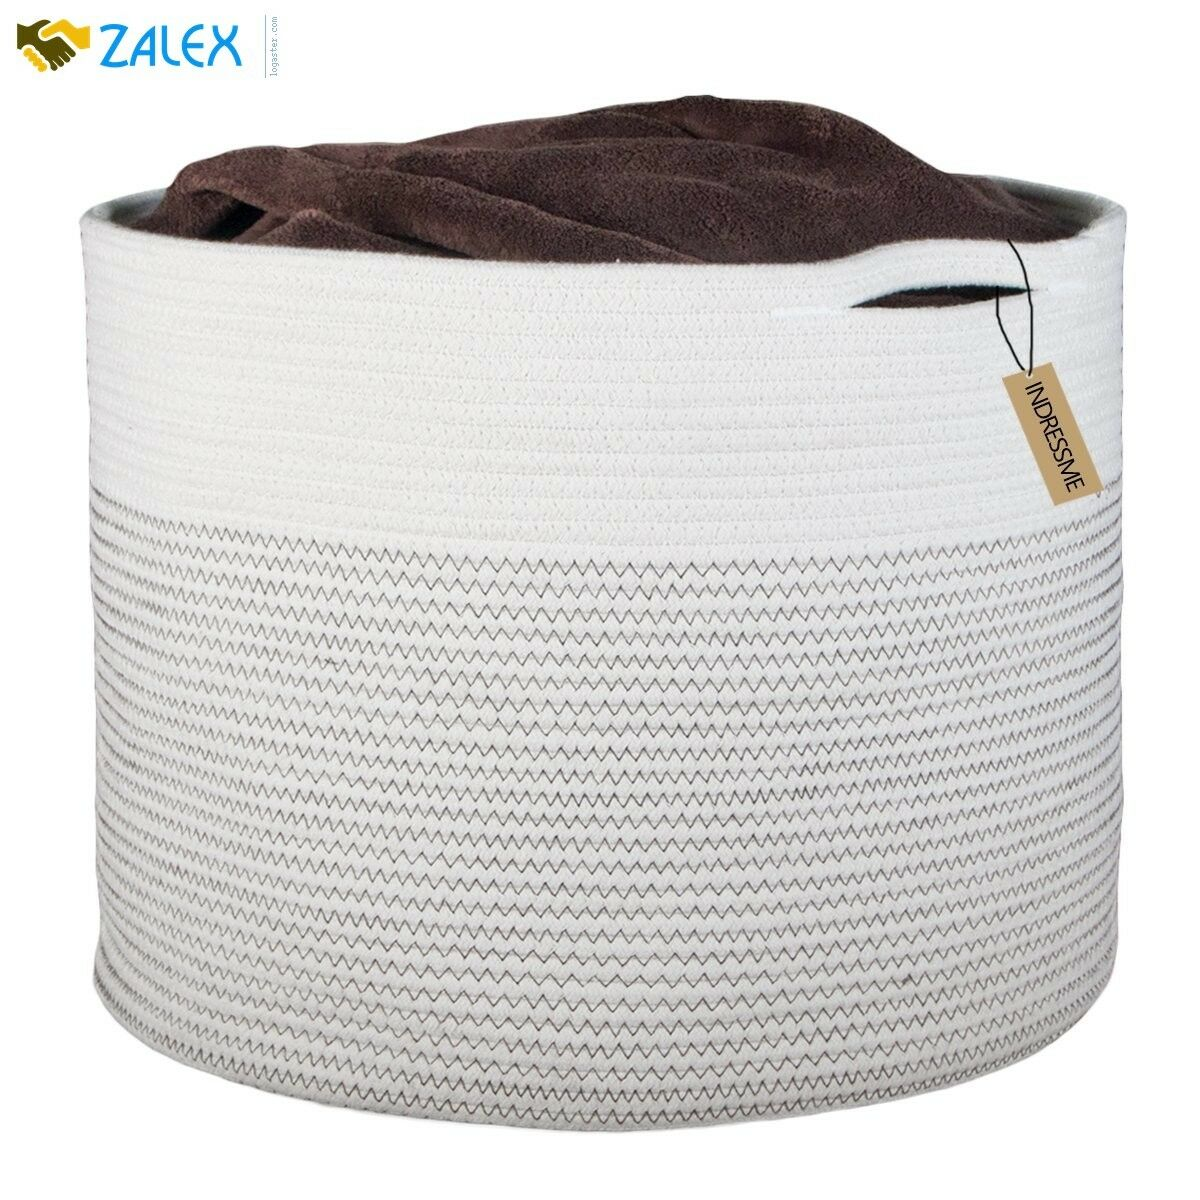 Extra Large Storage Baskets Cotton Rope Basket Woven Baby Laundry Bask For Toys